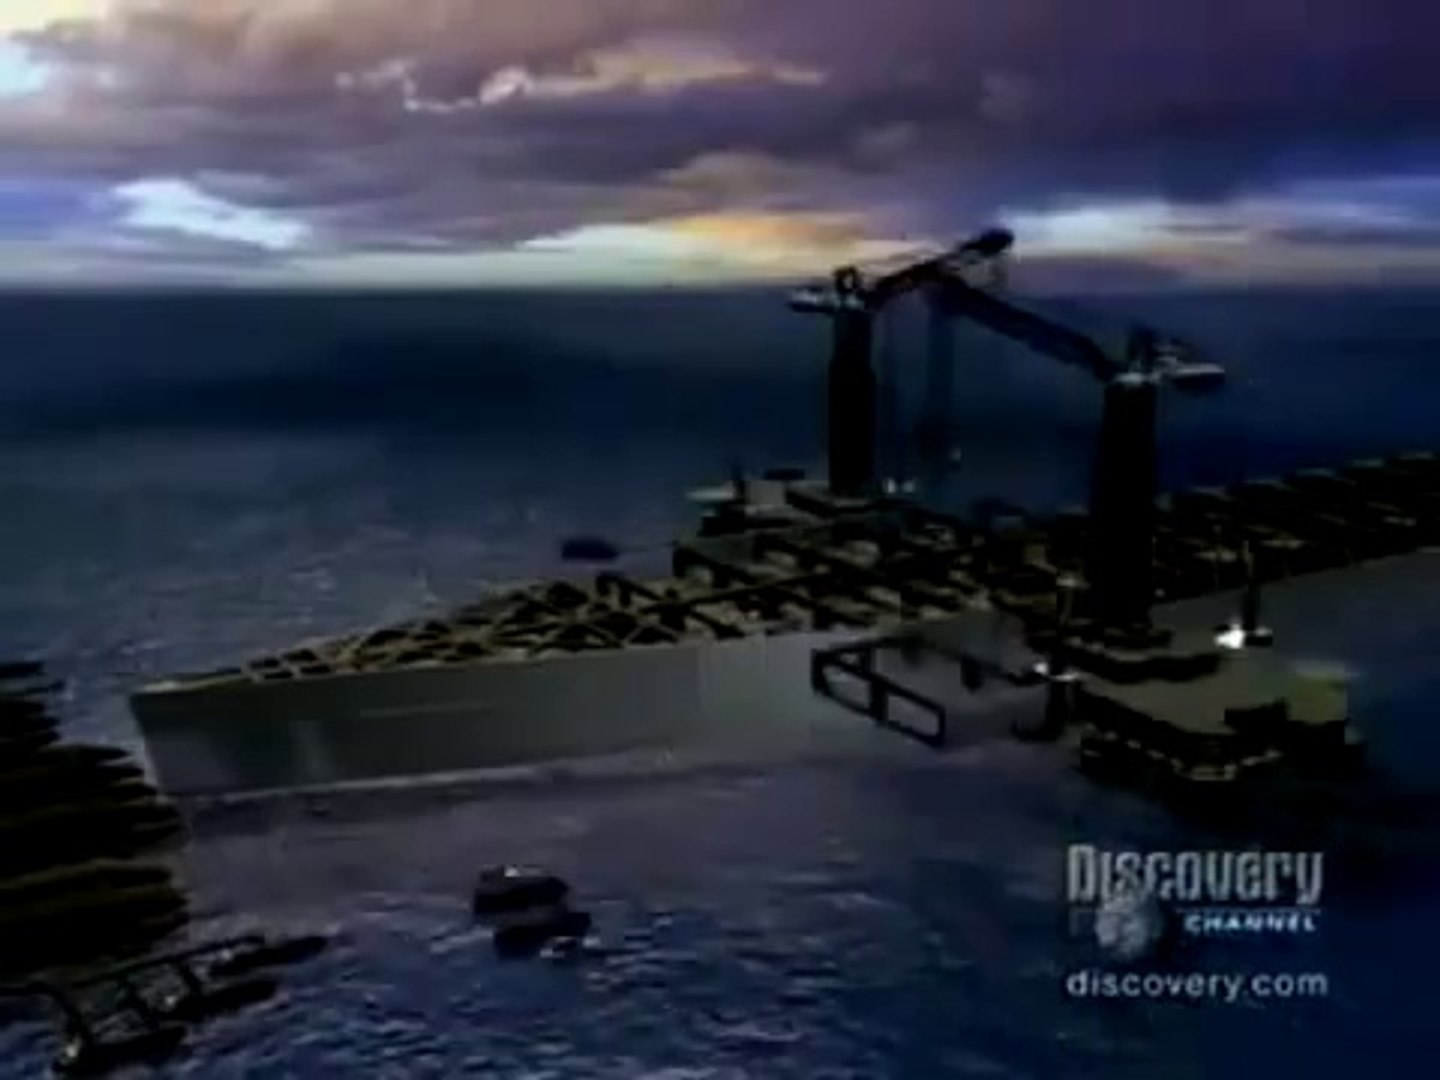 FREEDOM SHIP - ENGINEERING THE IMPOSSIBLE DOCUMENTARY - History Discovery Science Documentaries (ful